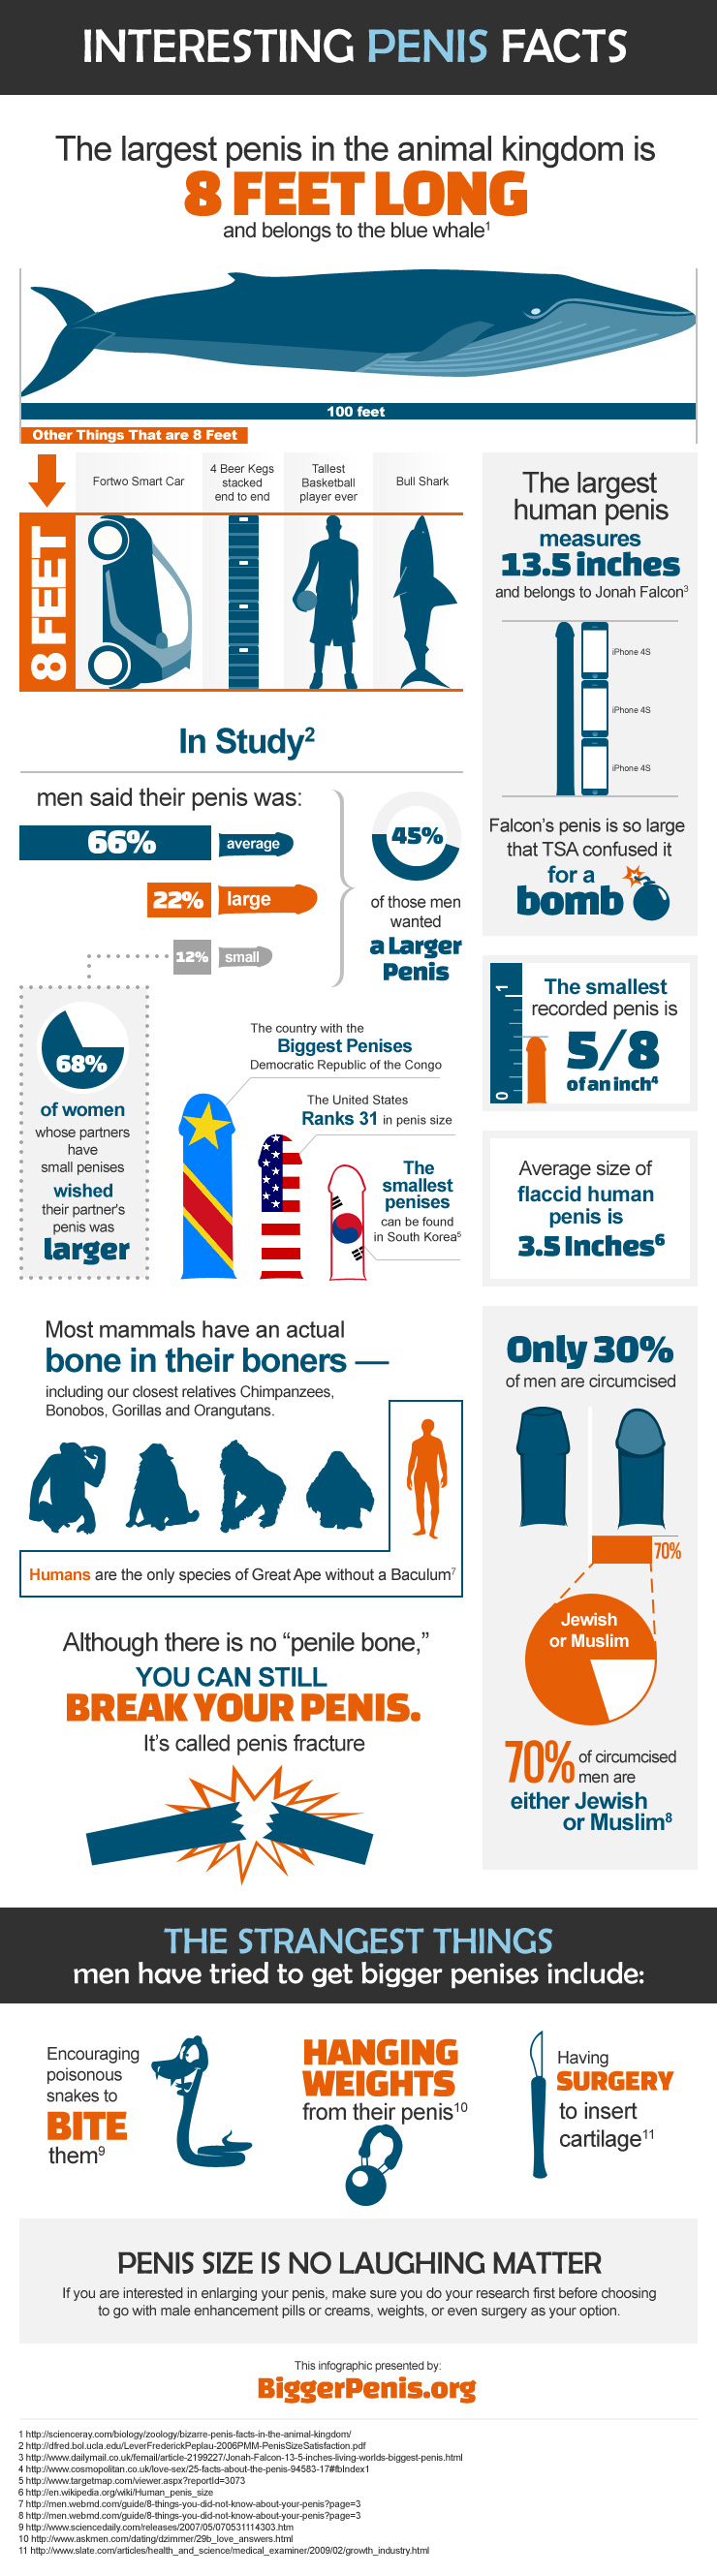 Interesting Penis Facts